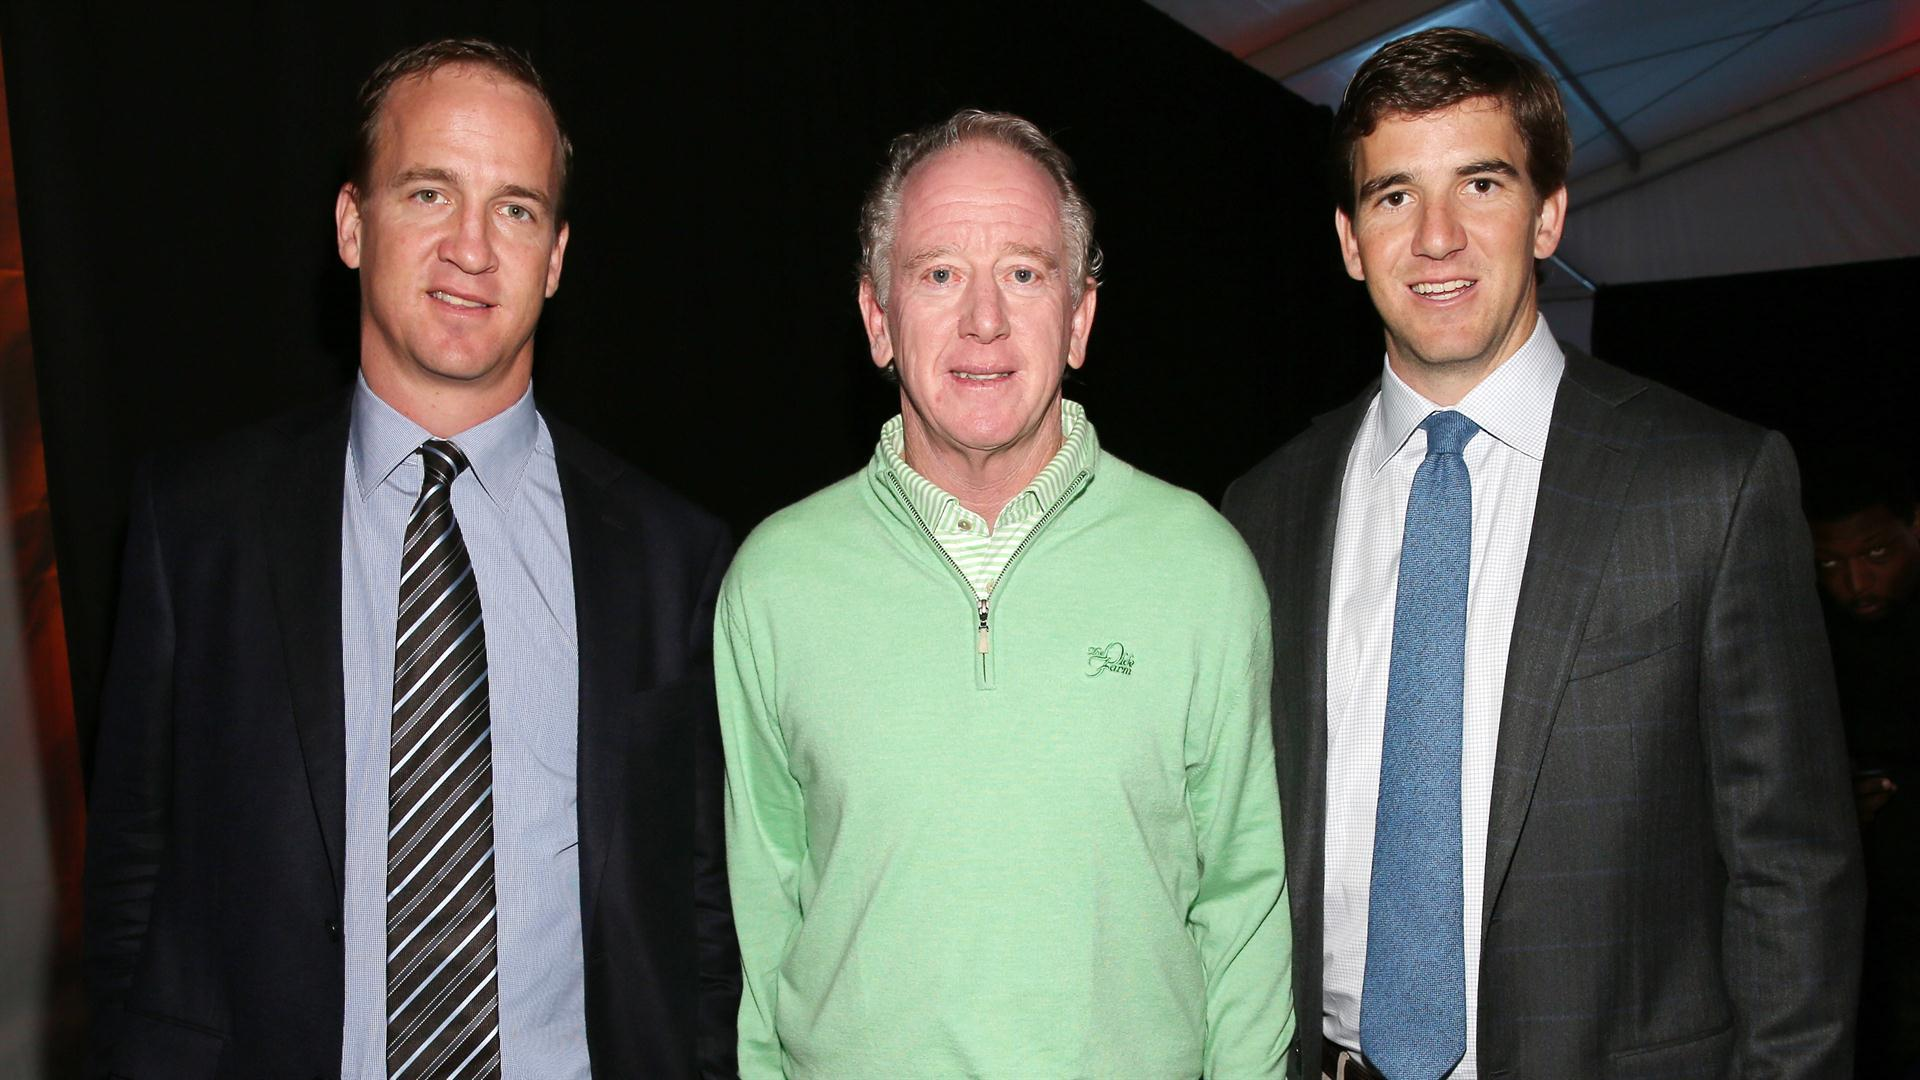 Archie, Eli and Peyton Manning among top NFL father-son combos